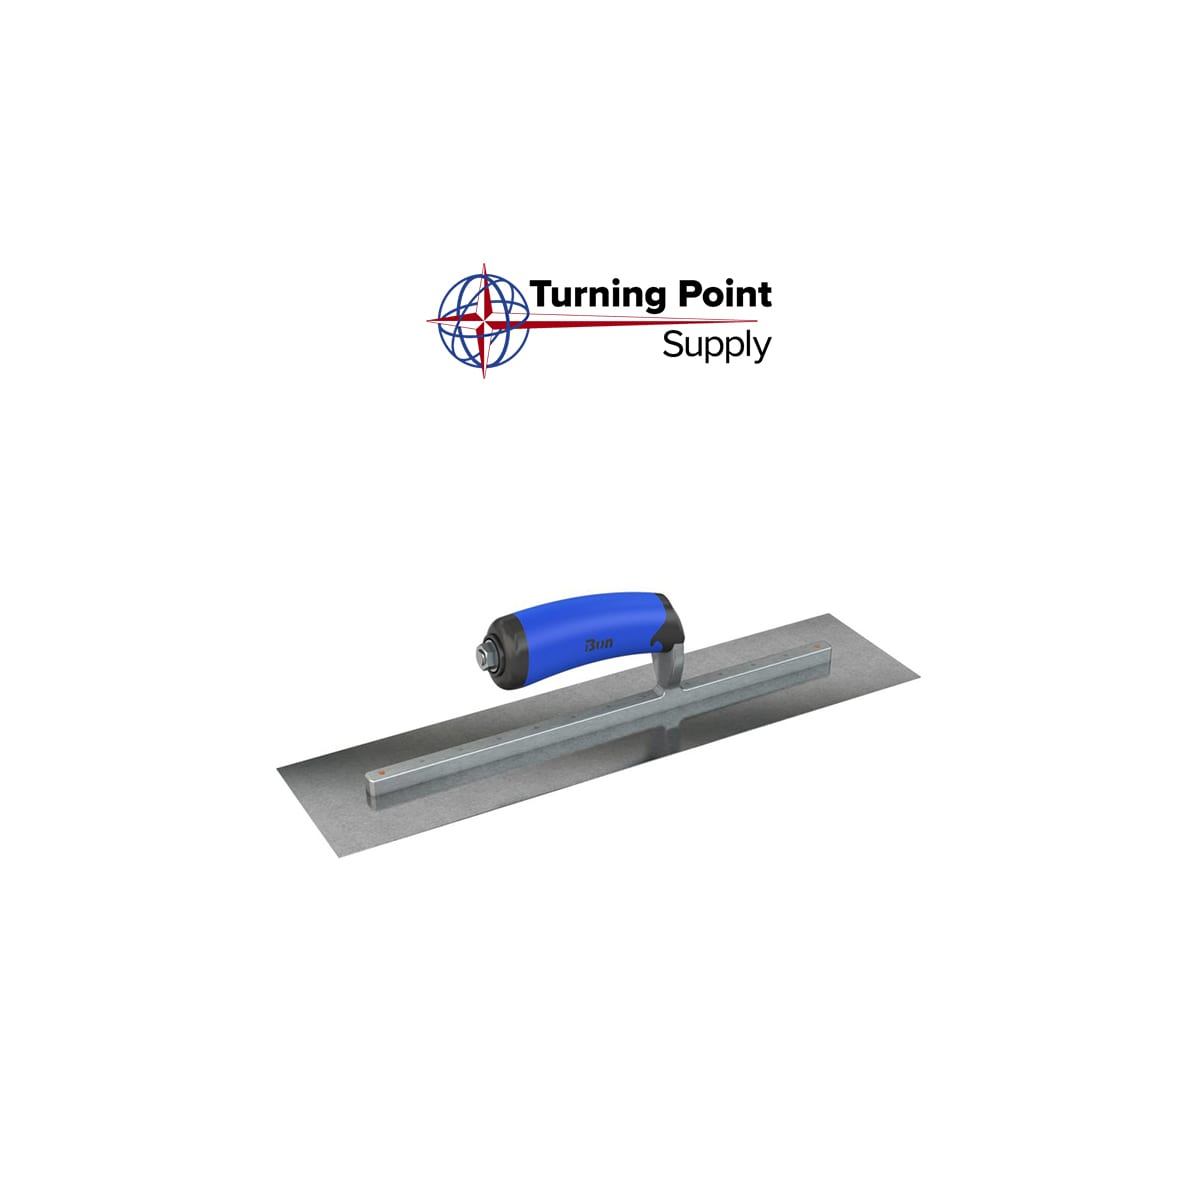 CARBON STEEL FINISHING TROWEL - SQUARE END - 20 X 5 - COMFORT WAVE HANDLE